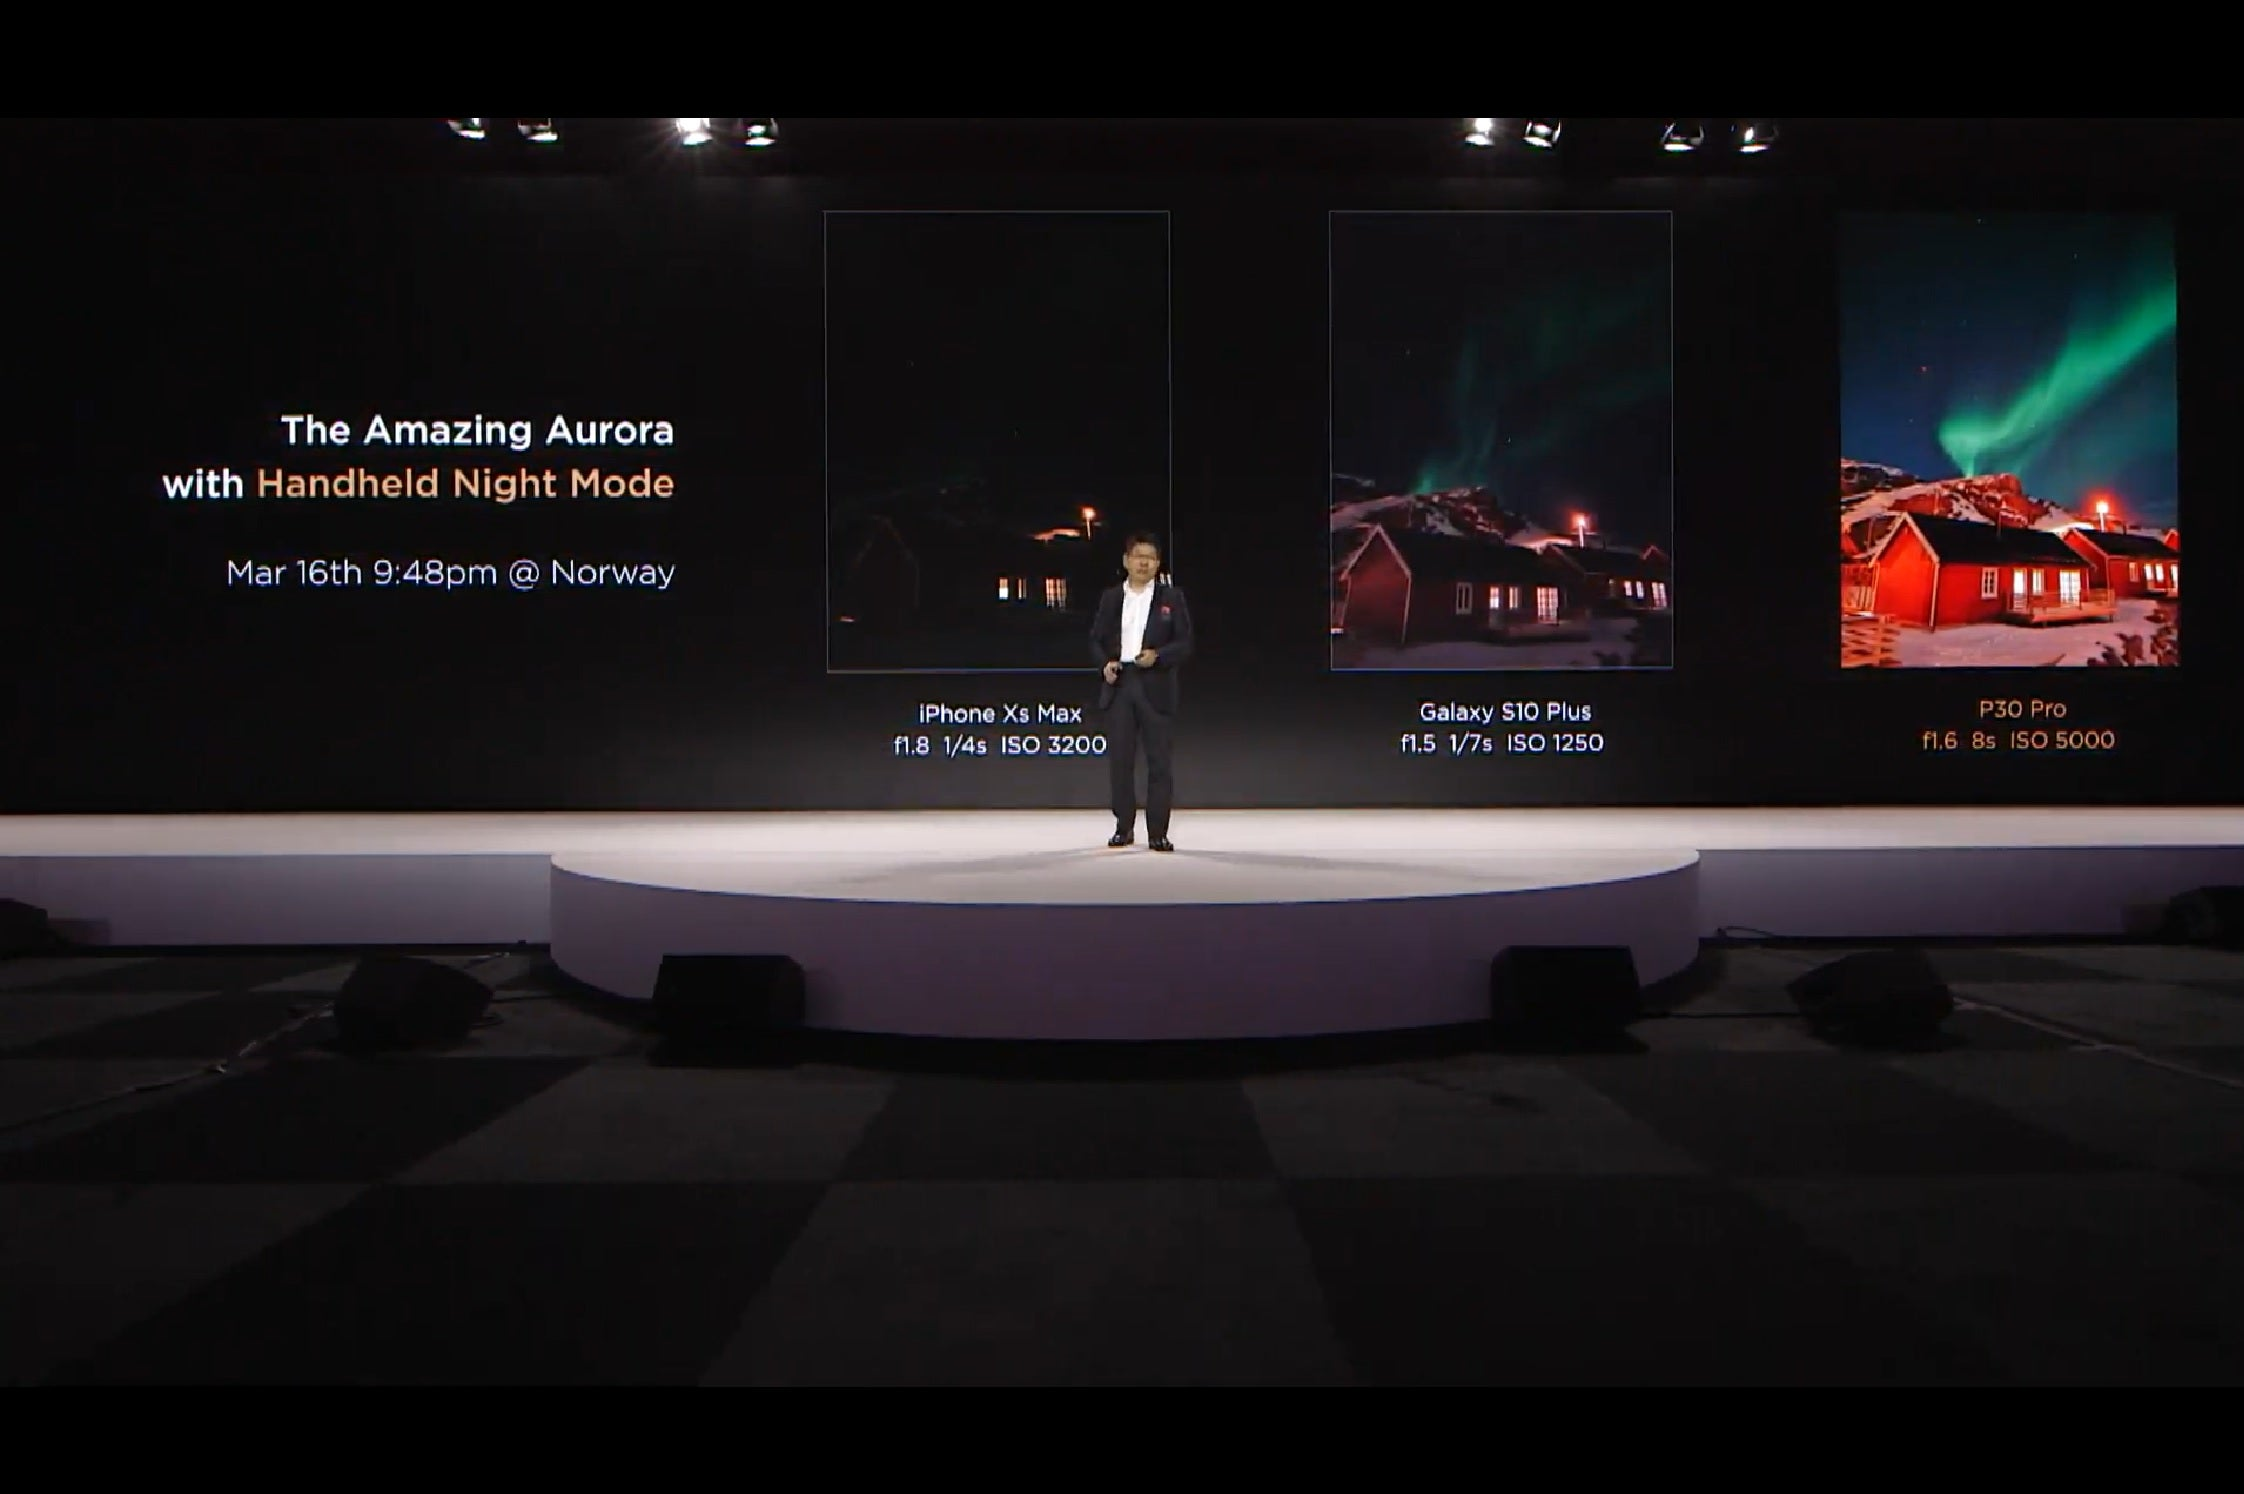 Huawei P30: iPhone rival features 'revolutionary' Leica camera - but